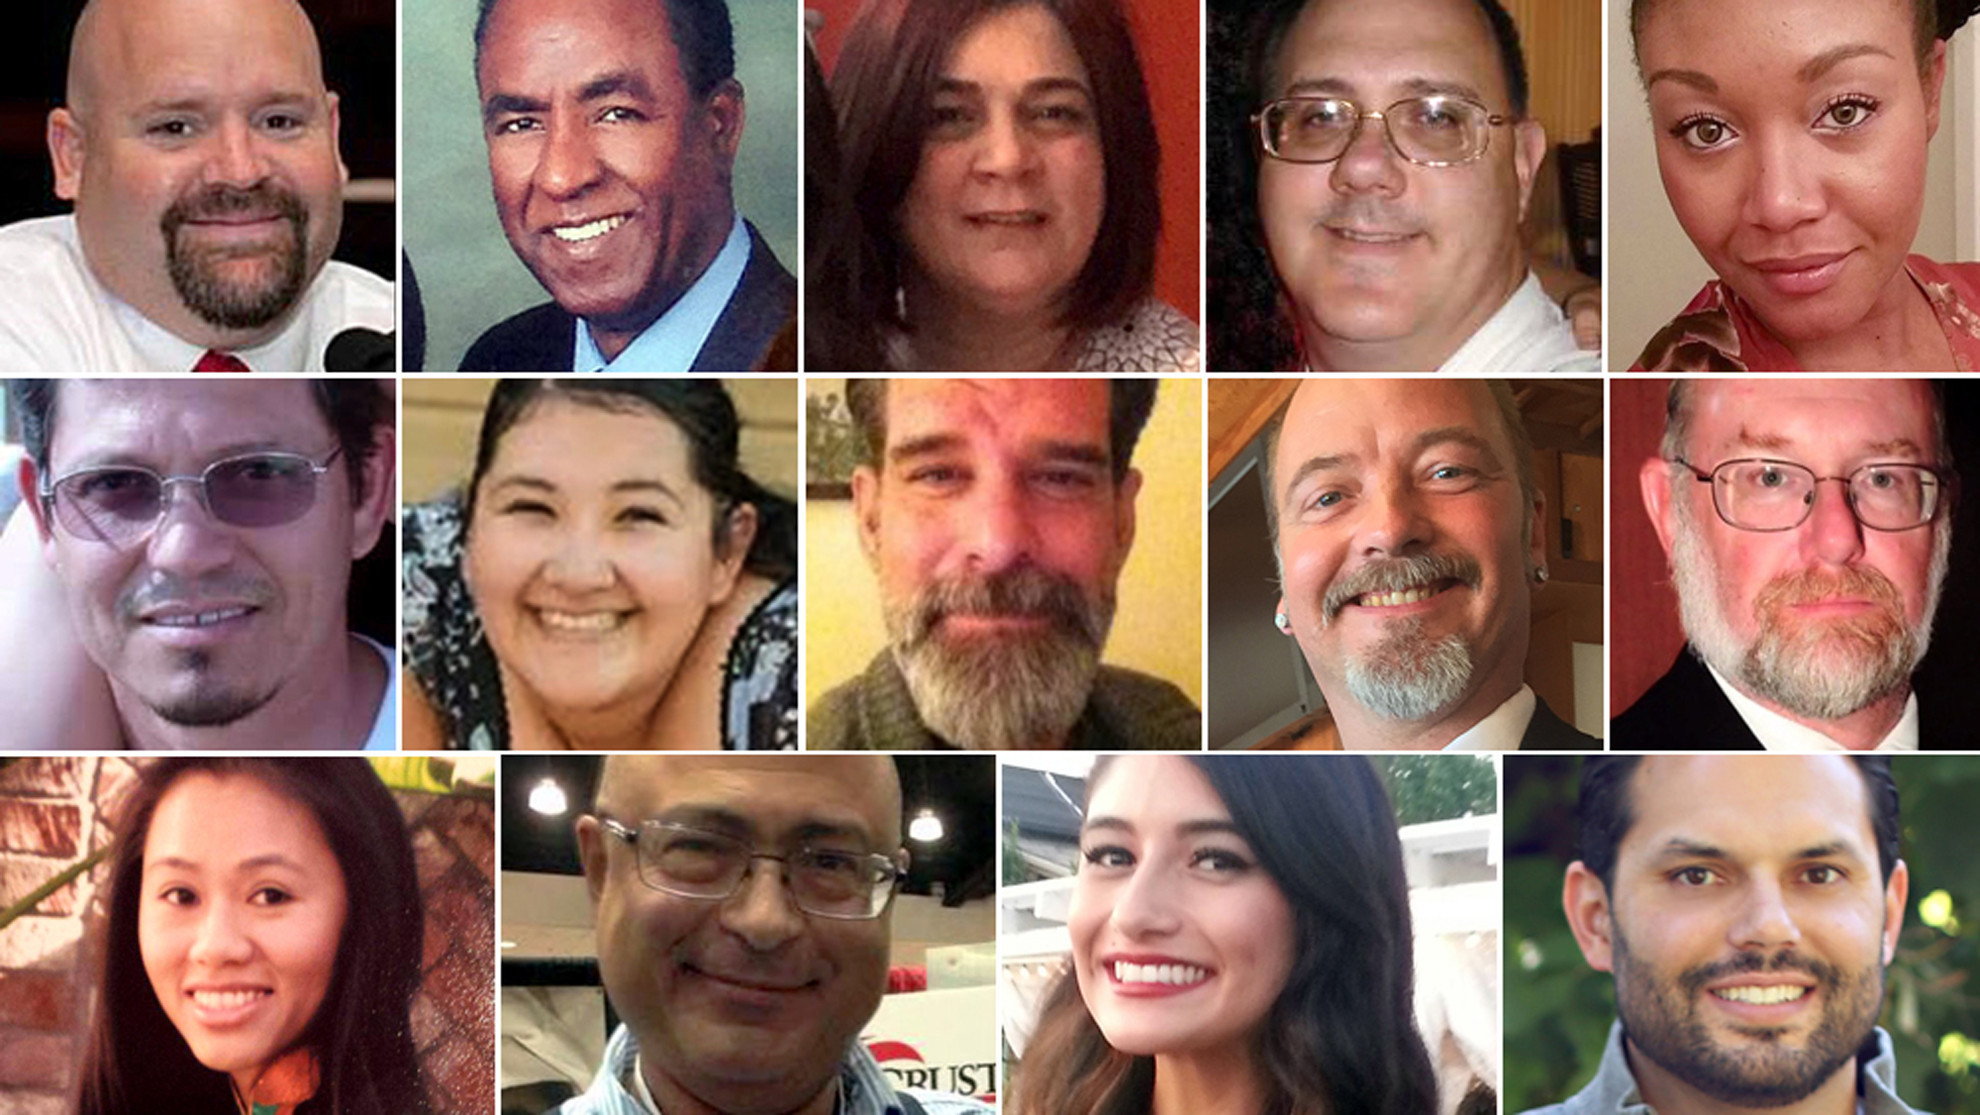 We may never know why the San Bernardino terrorists targeted a Christmas party. Here's what we ...